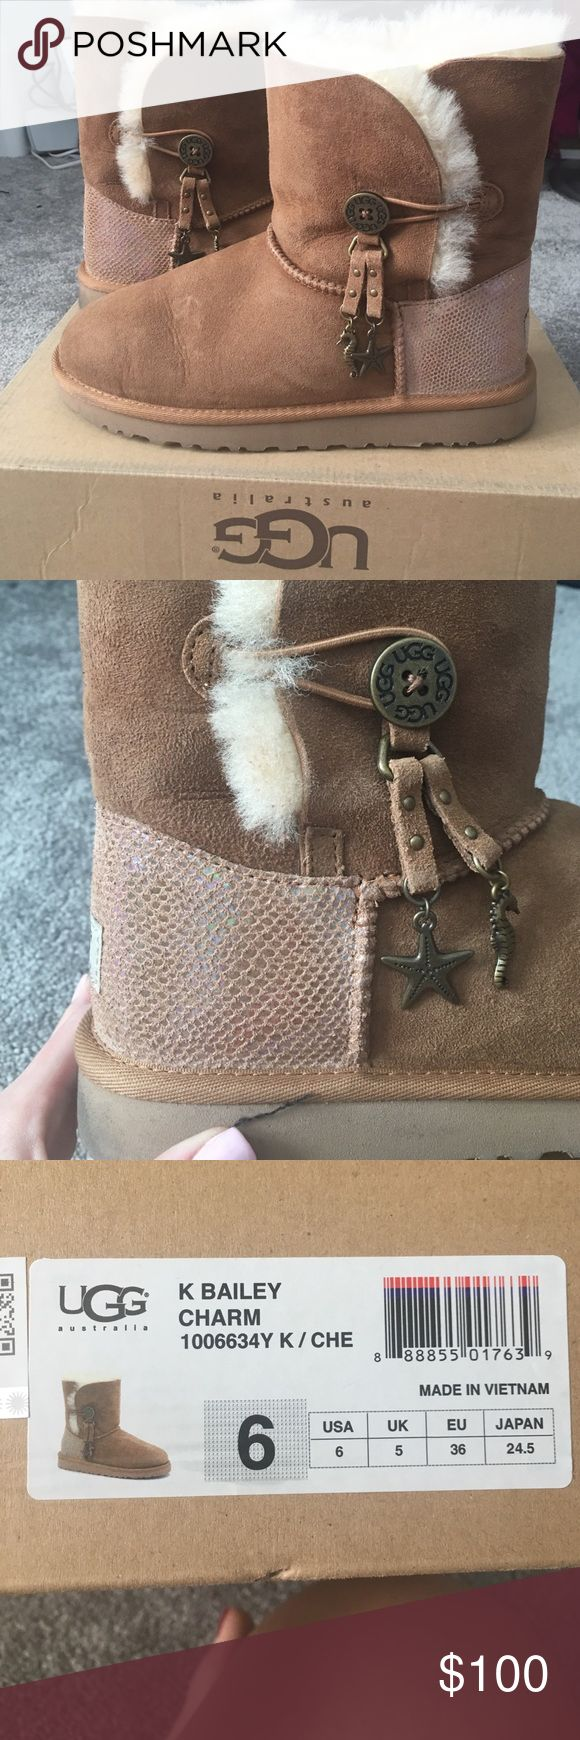 Really cheap ugg boots - Real Ugg Boots